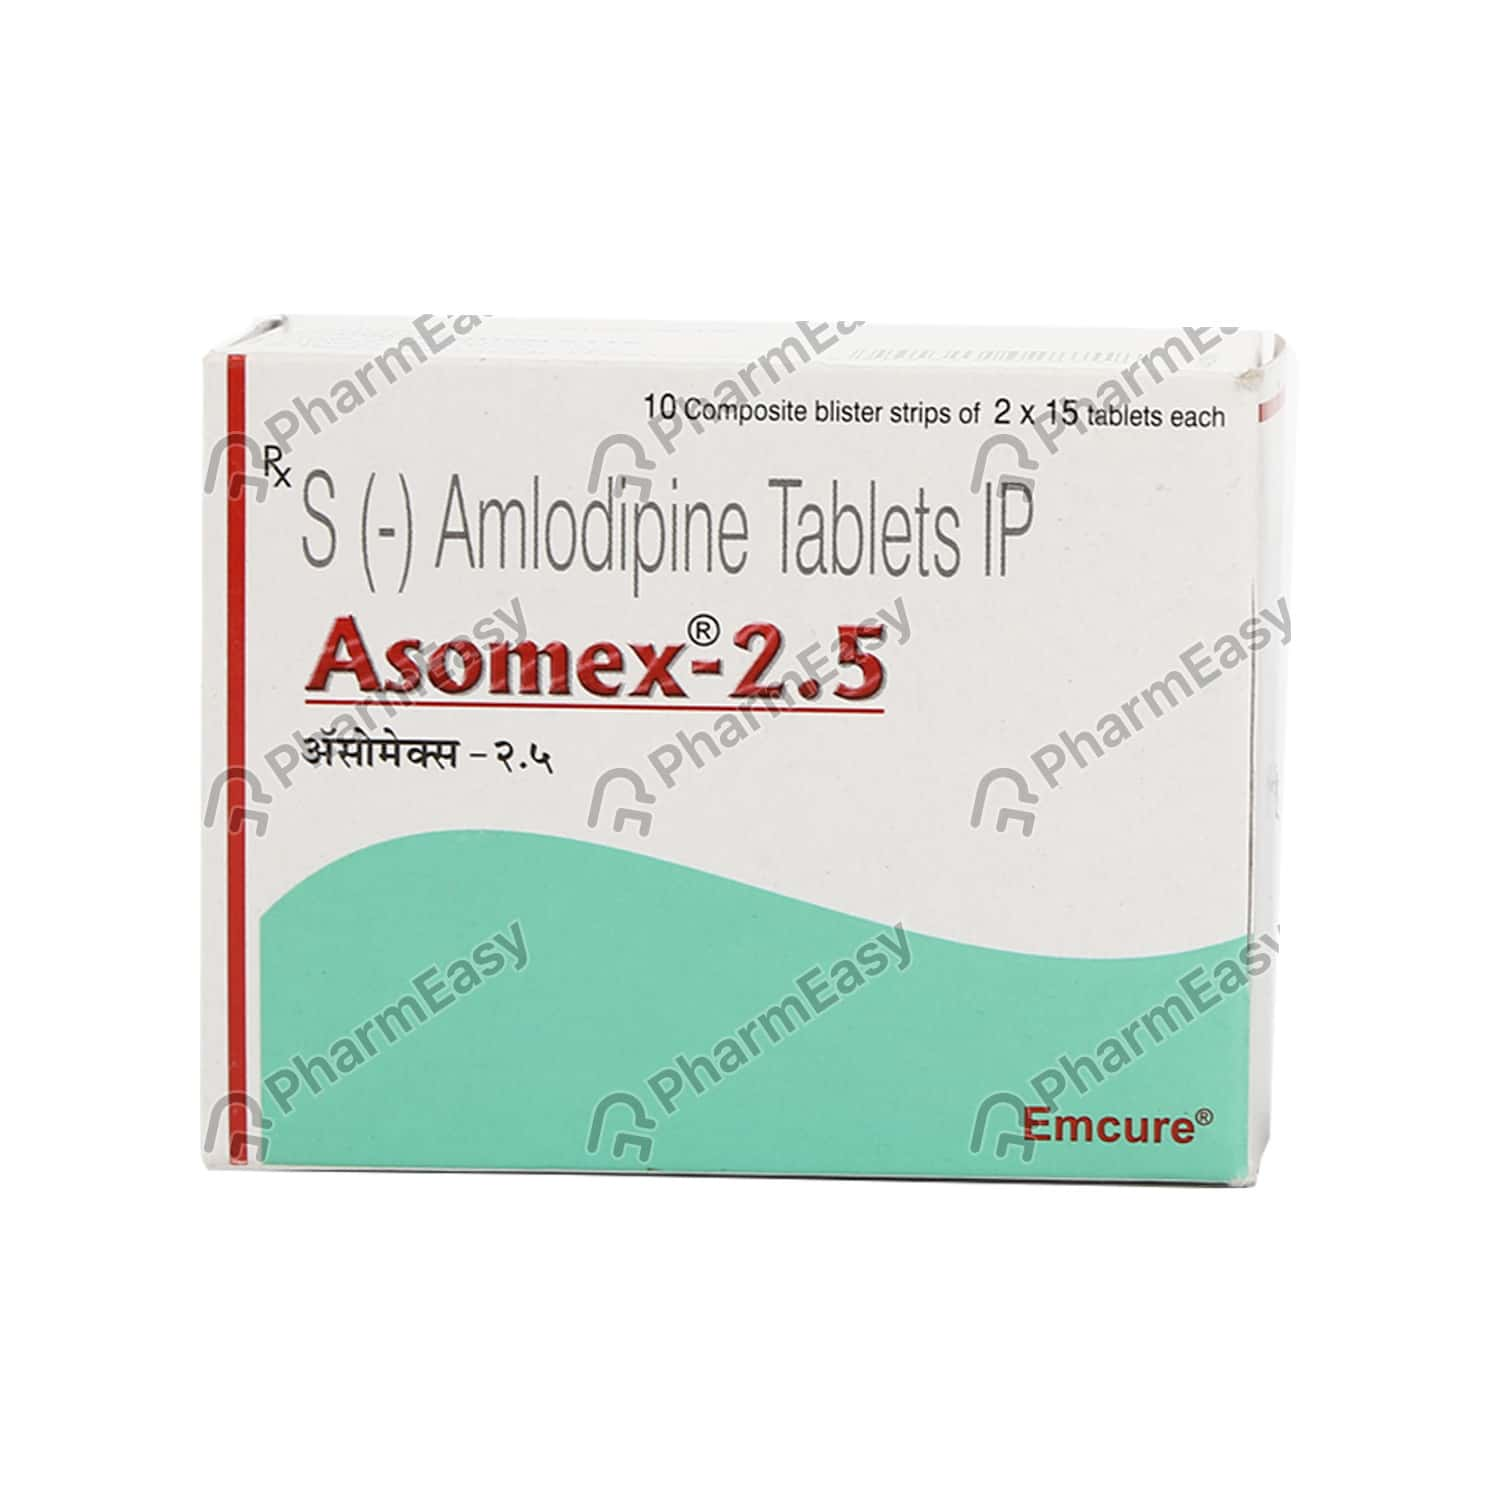 Asomex 2.5mg Strip Of 15 Tablets